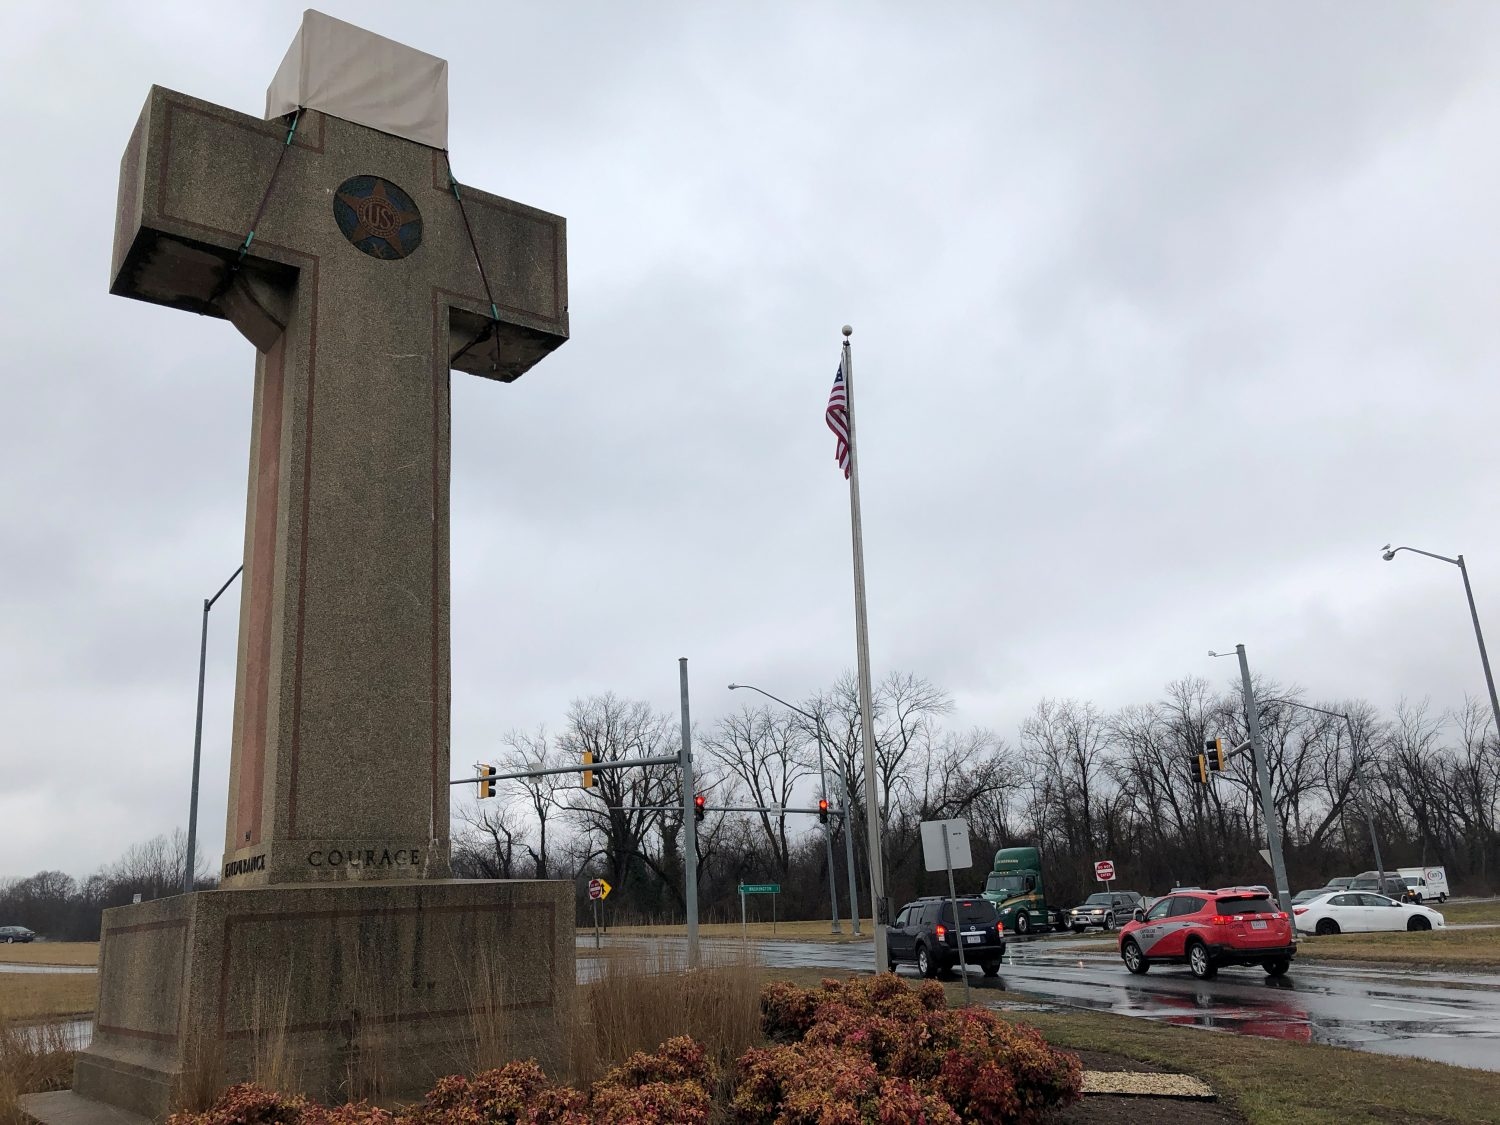 A concrete cross commemorating servicemen killed in World War One, that is the subject of a religious rights case now before the U.S. Supreme Court, is seen in Bladensburg, Maryland, U.S., February 11, 2019. Picture taken on February 11, 2019. REUTERS/Lawrence Hurley